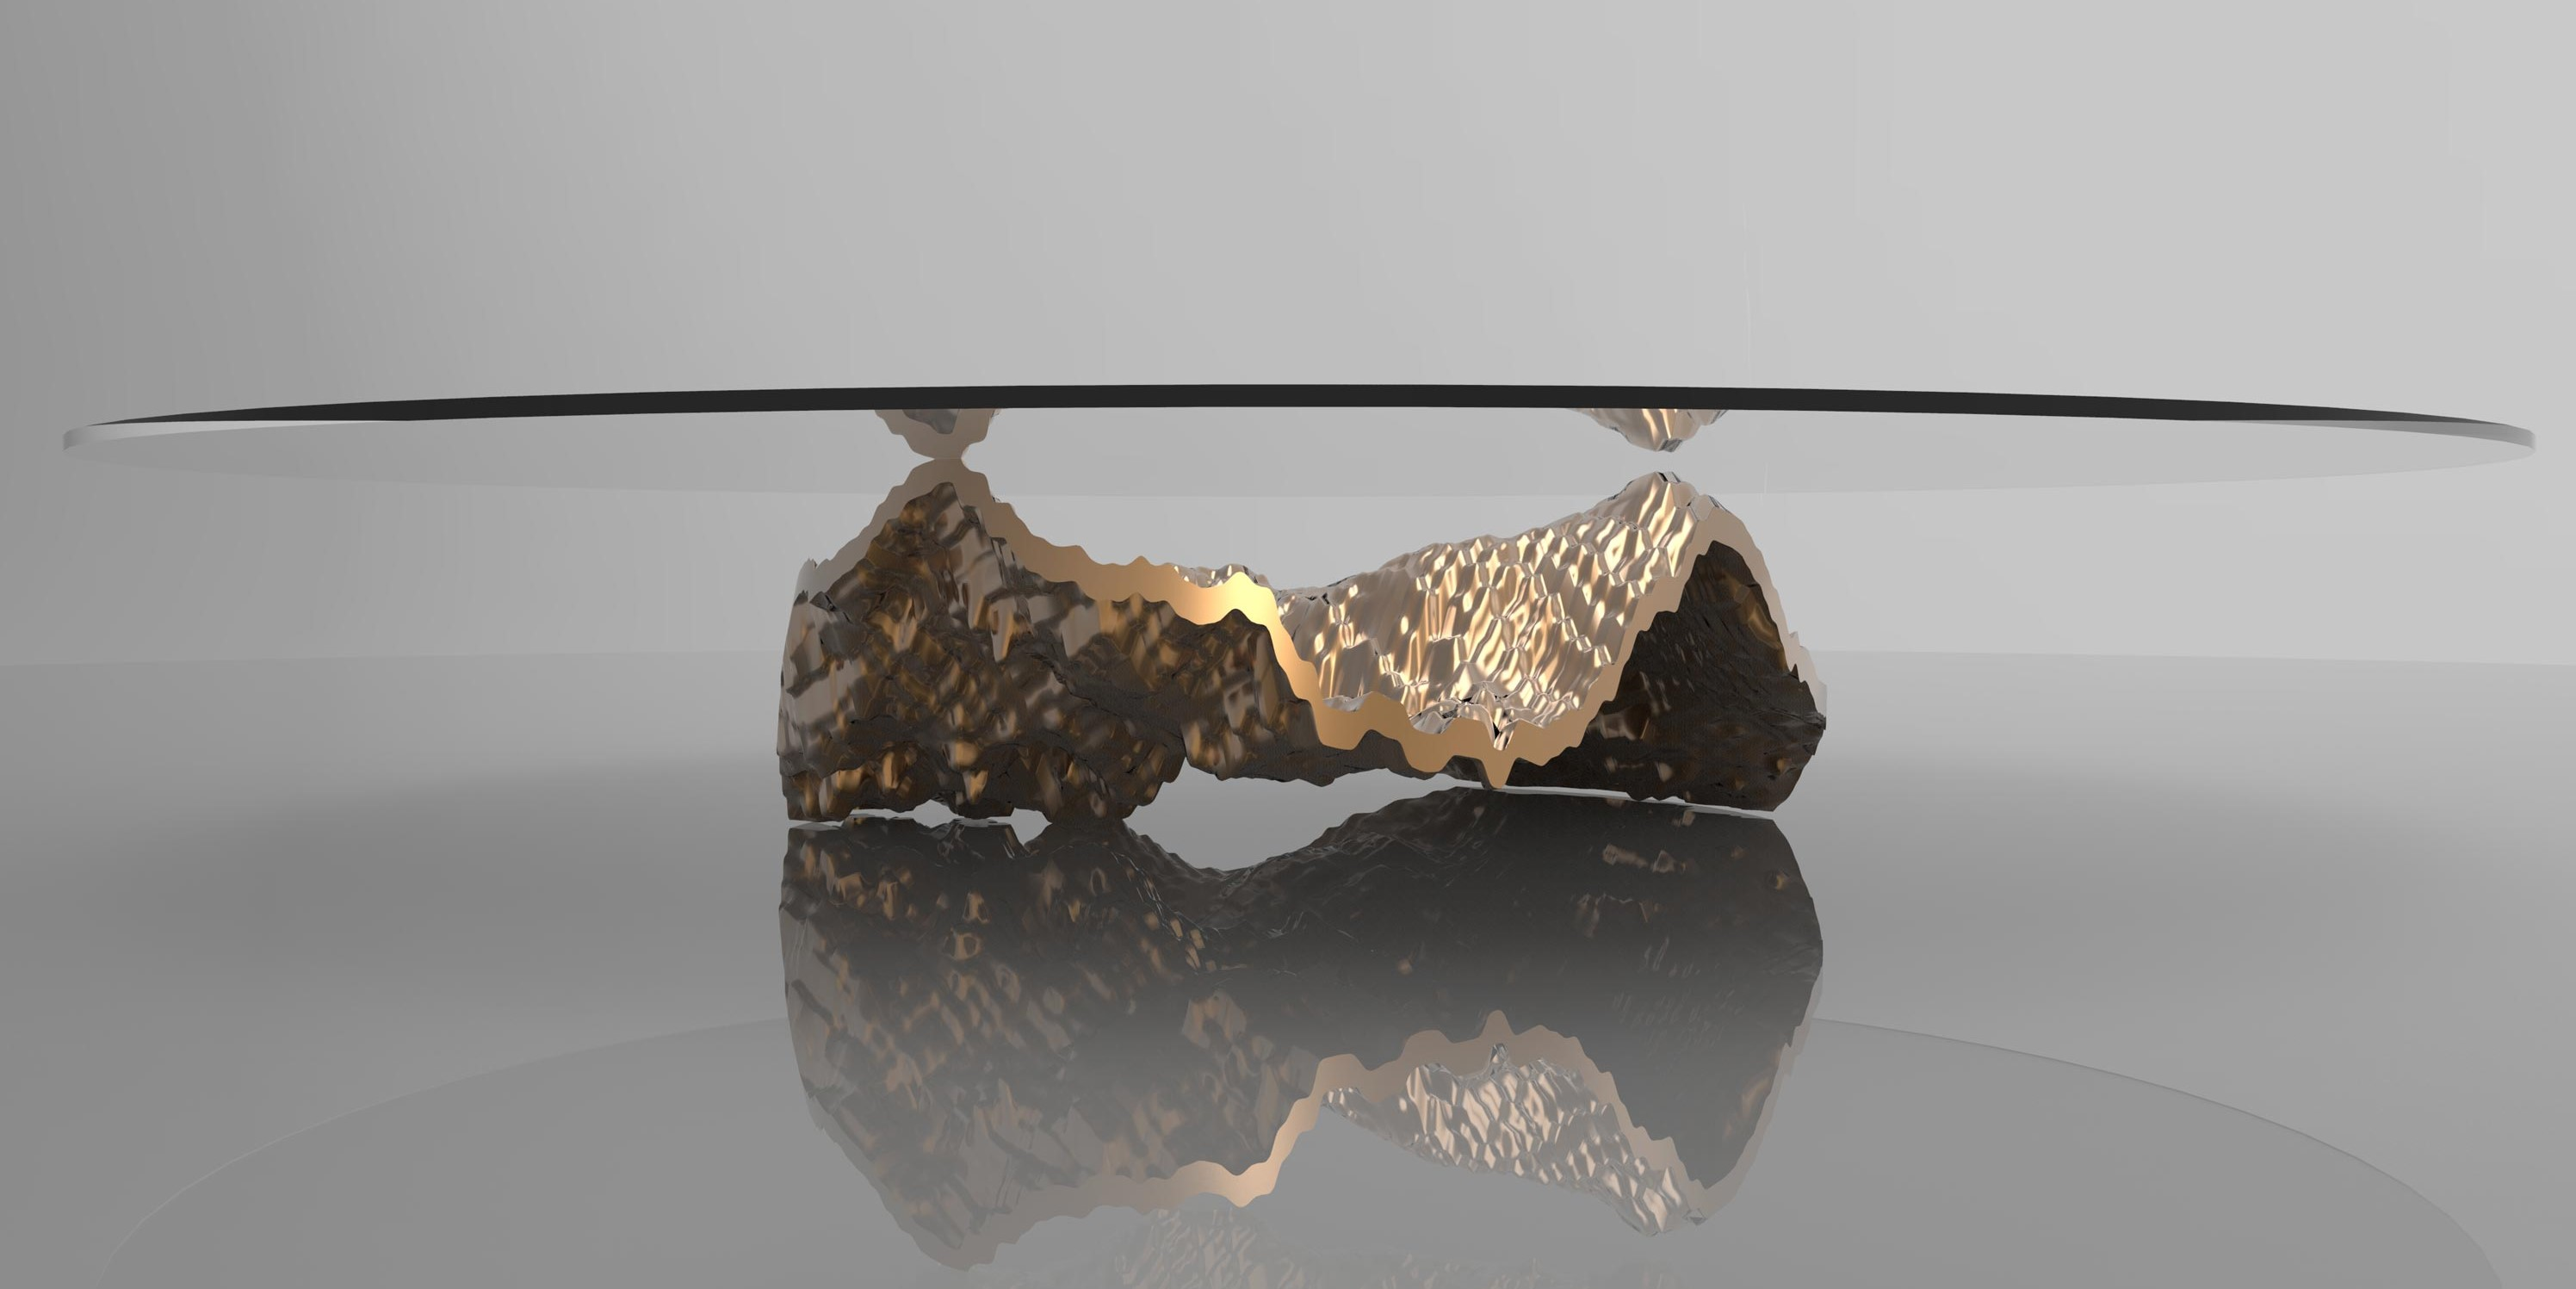 Table concept based on the oceans rendered in metal